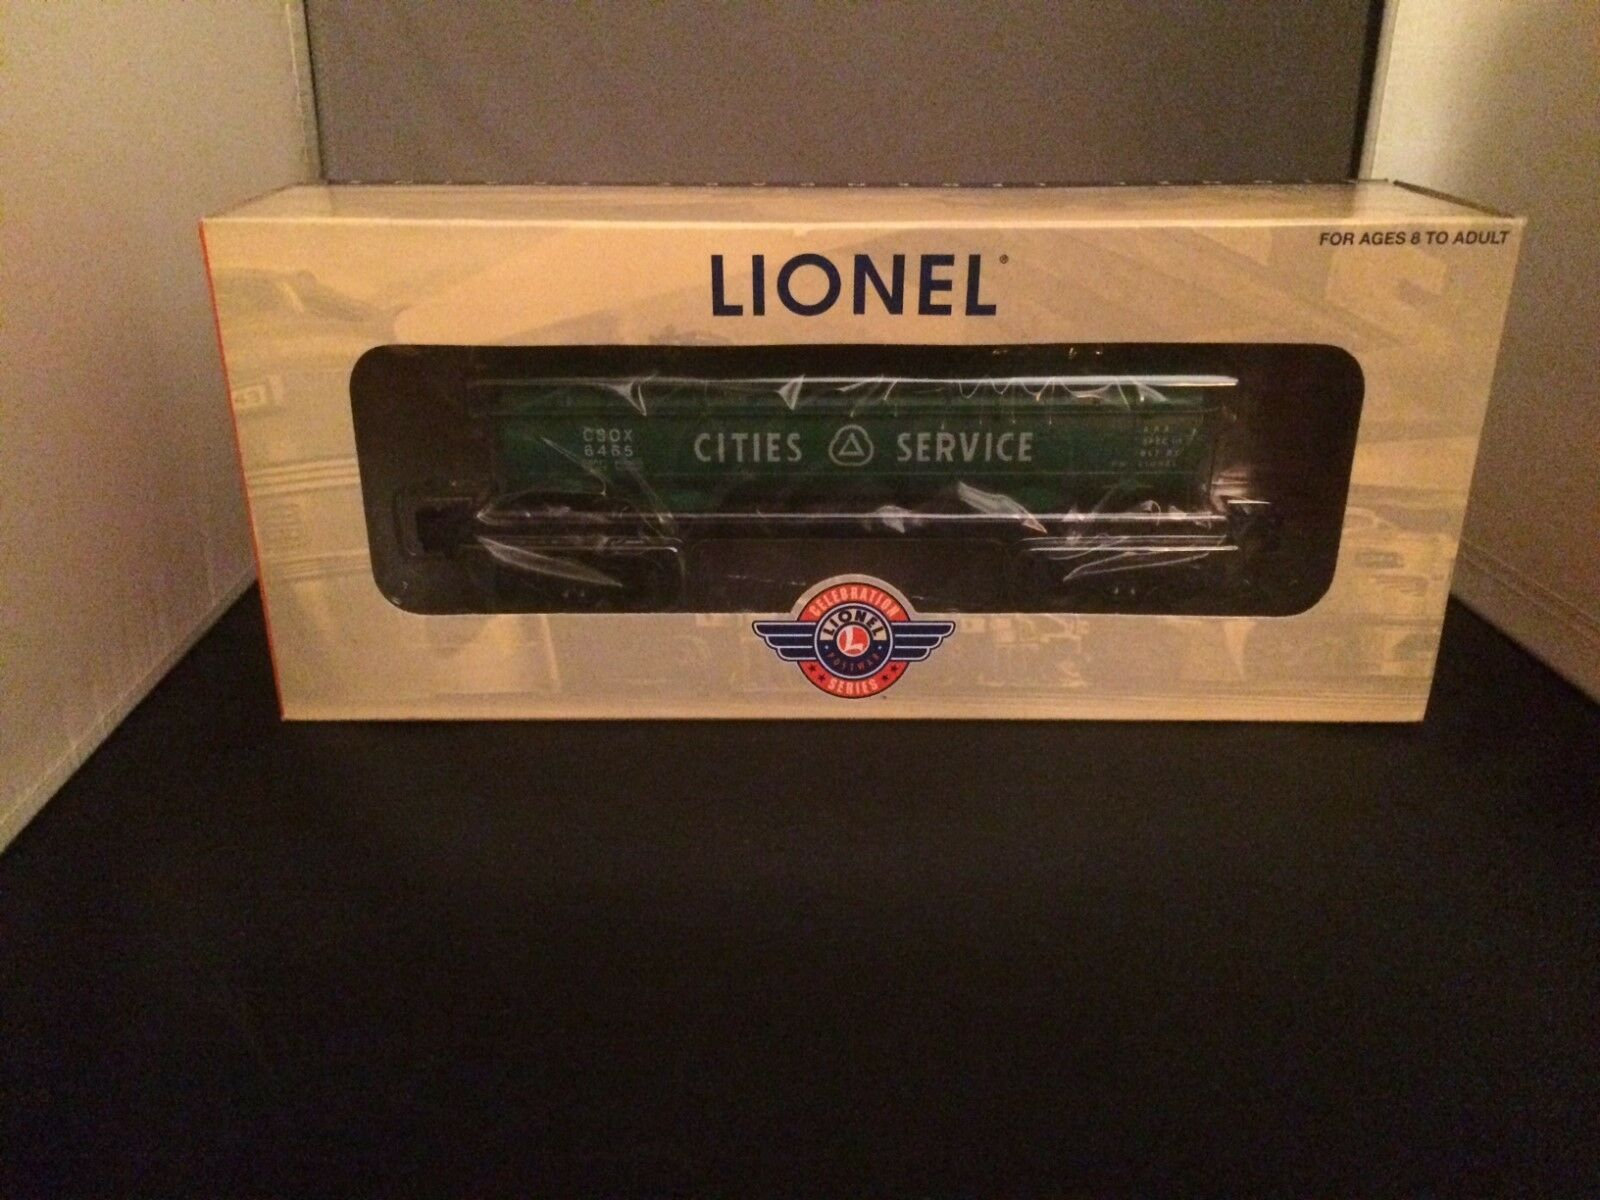 Lionel 29617 6465 Cities Services Tank Car New in Box  PWC Series